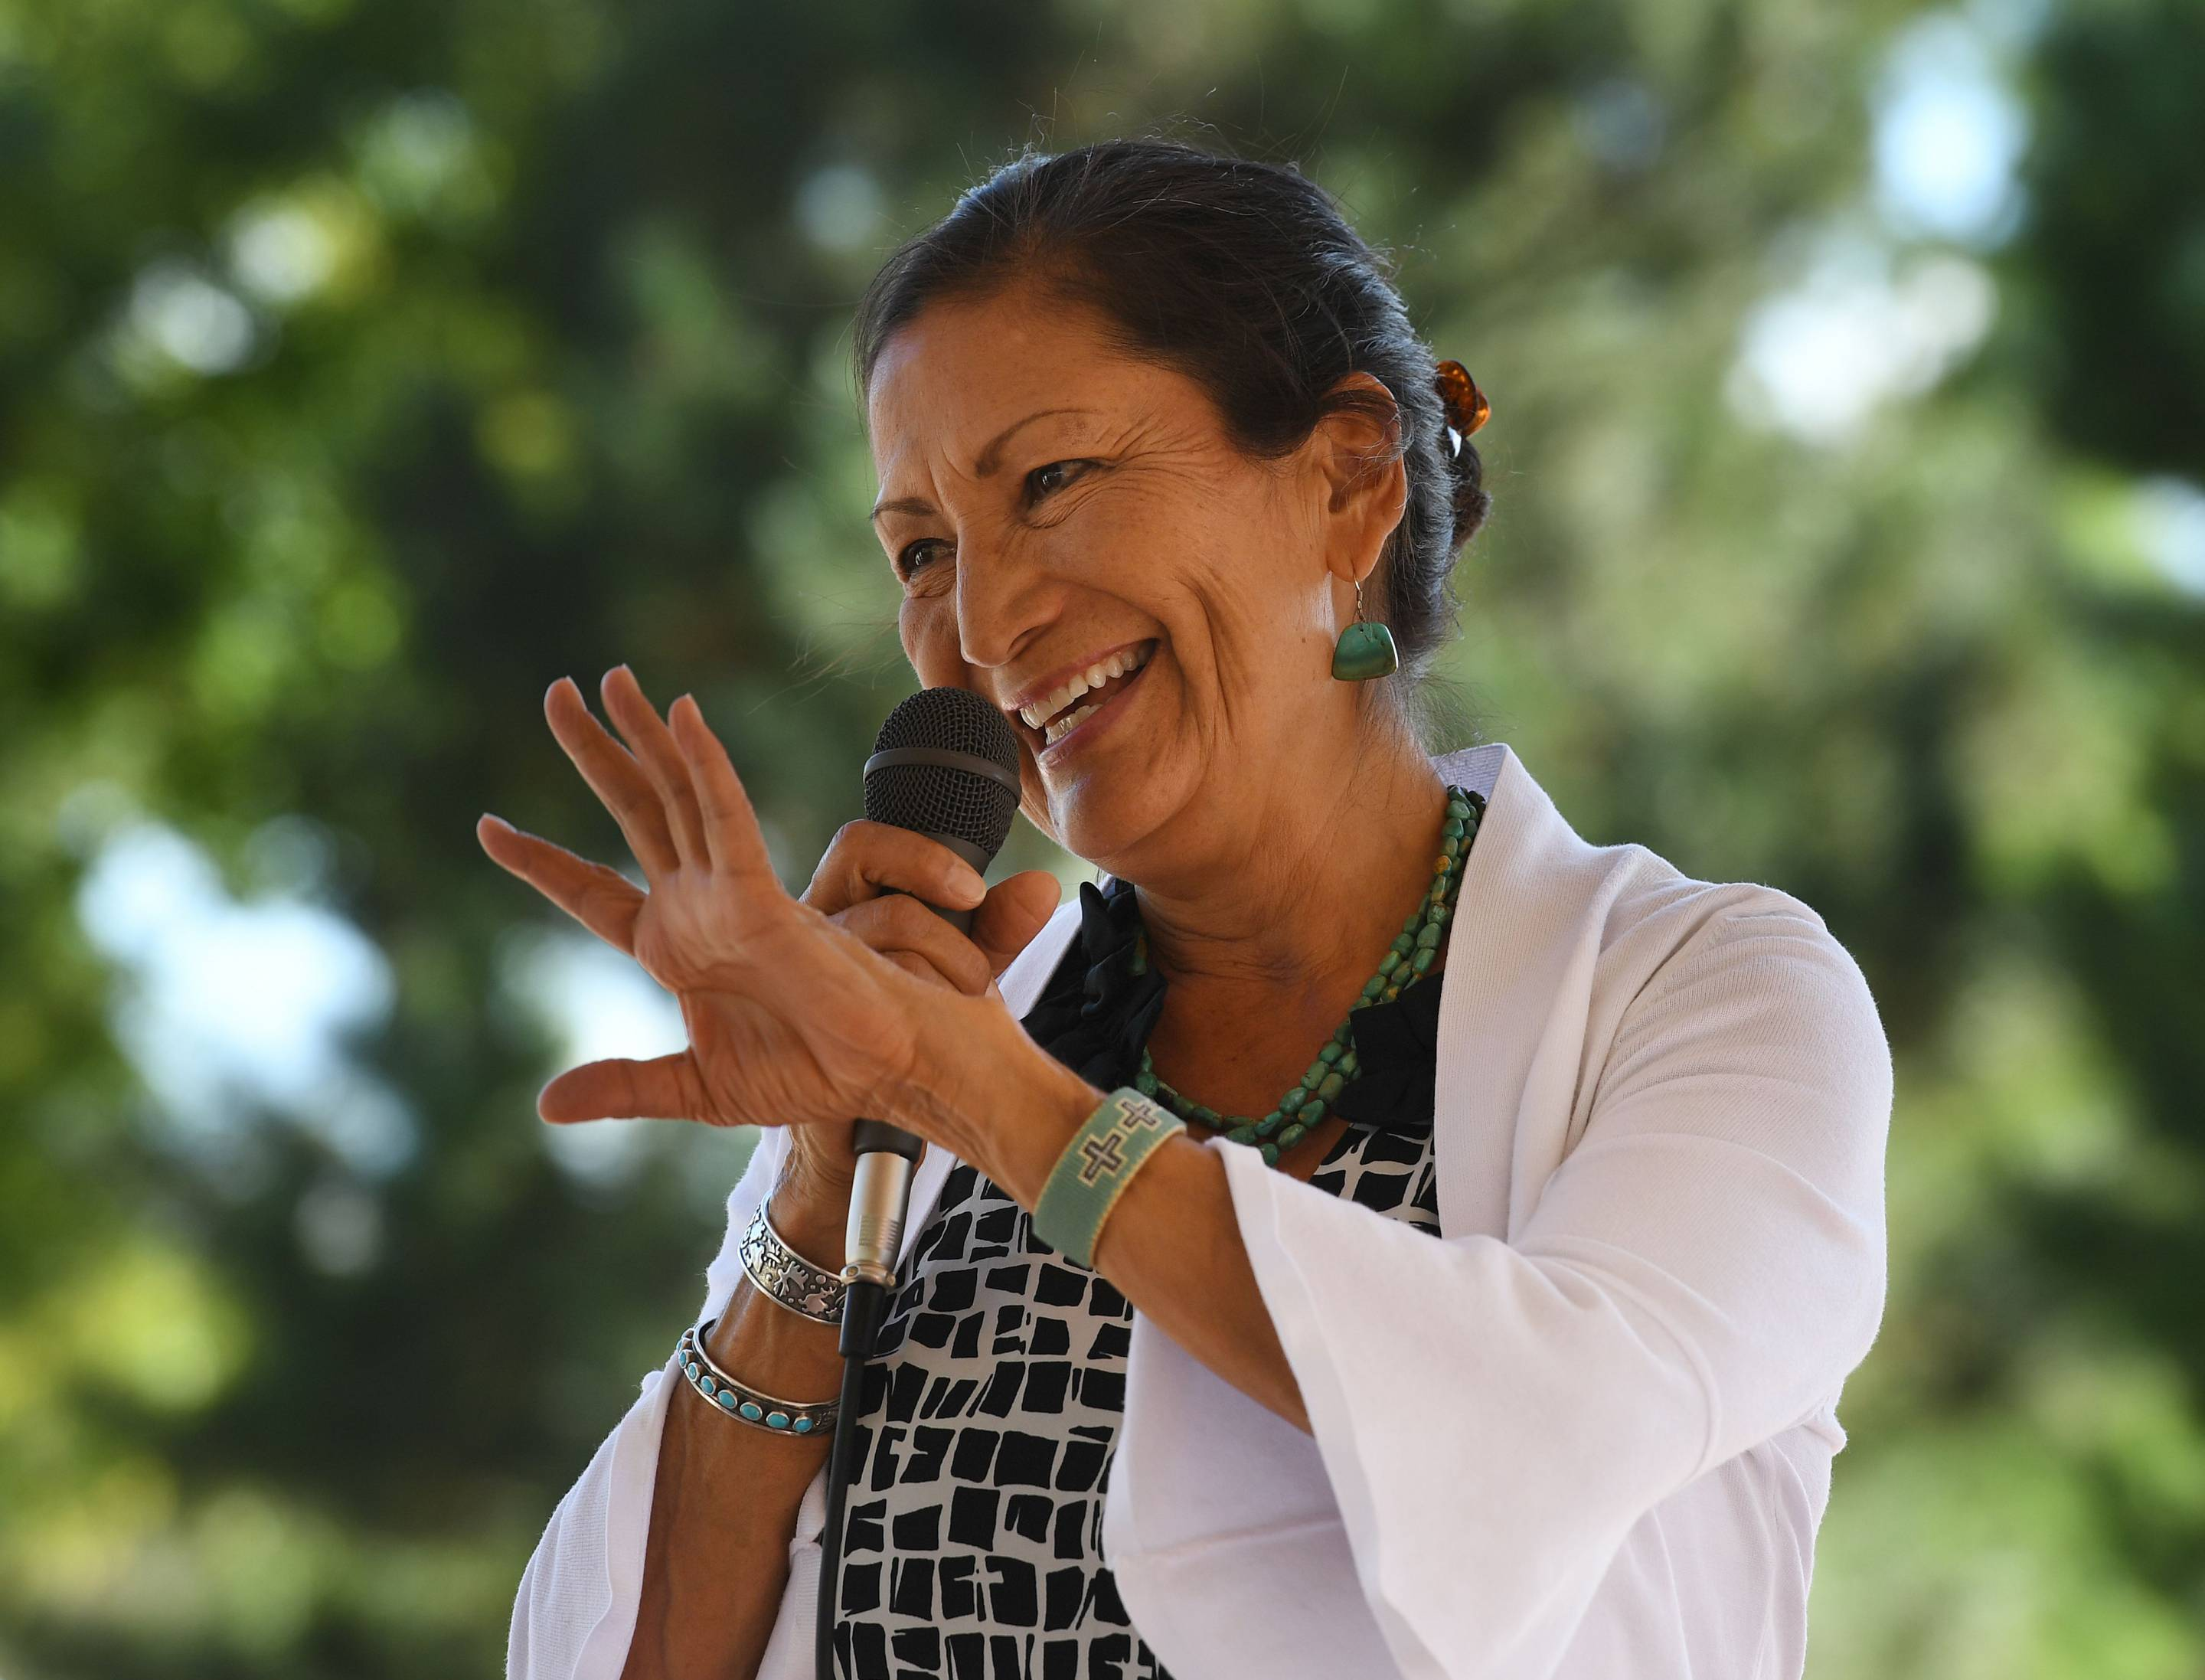 Deb Haaland, one of the first two Native American women elected to Congress, speaks in Albuquerque, N.M., on Oct. 1, 2018.